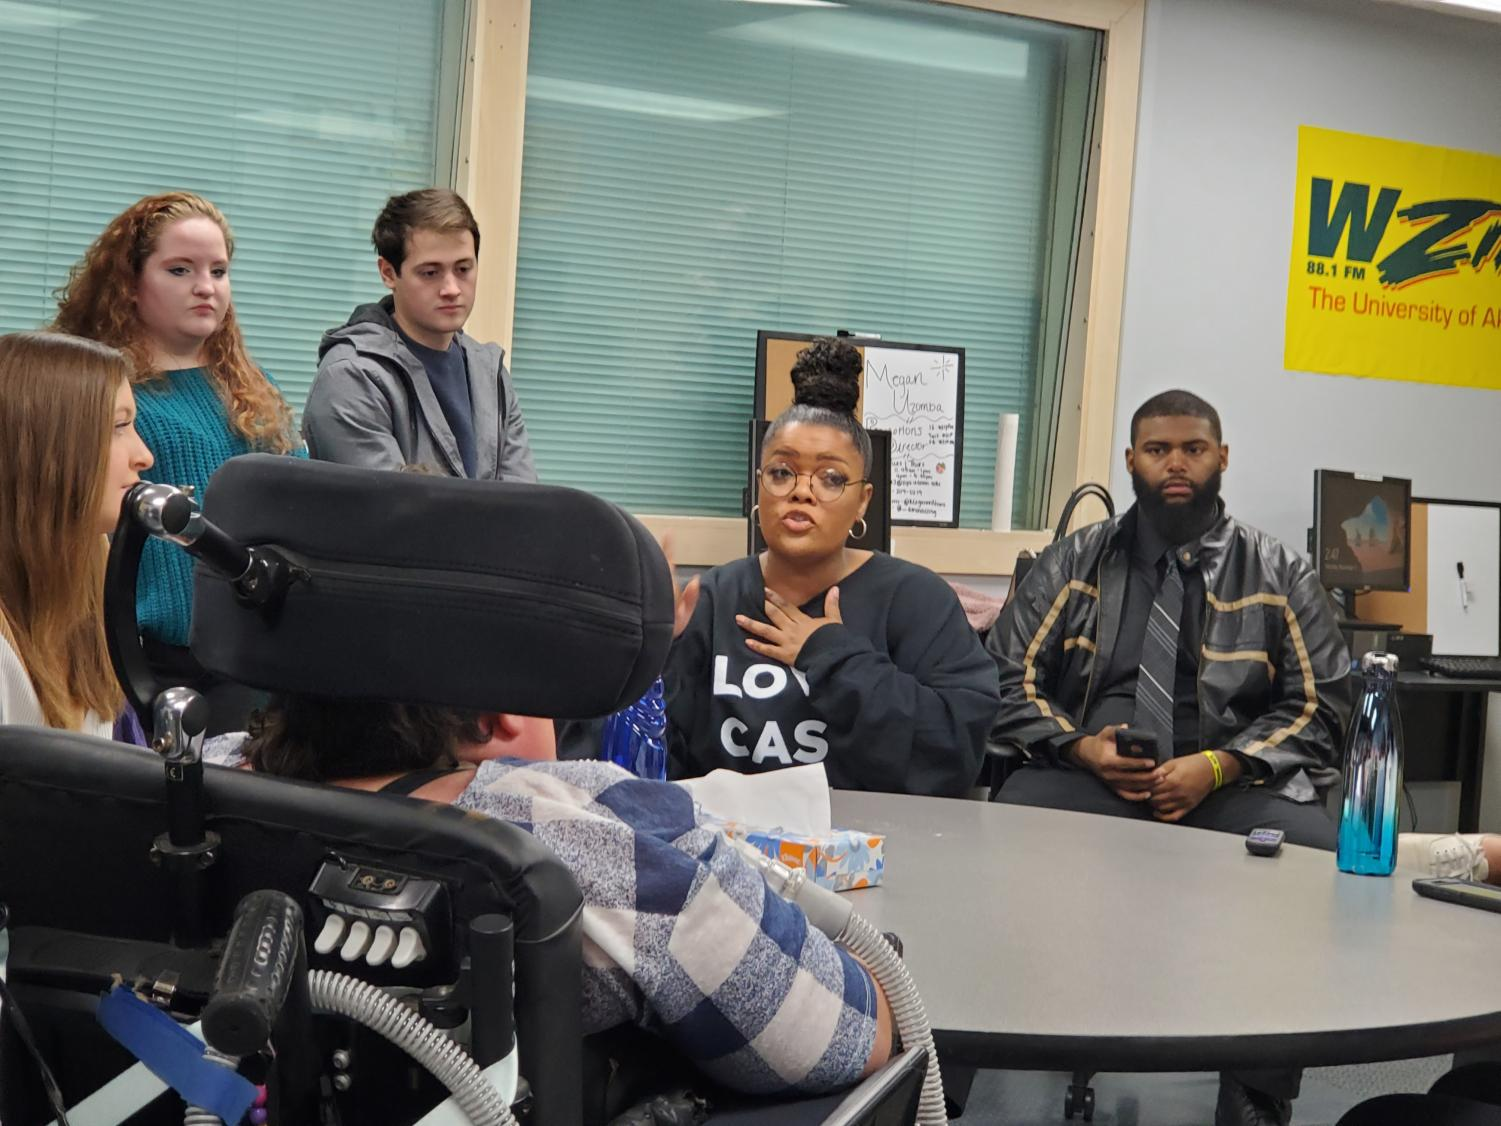 Yvette Nicole Brown told students to build a foundation under themselves in order to stay stable when they make it big.